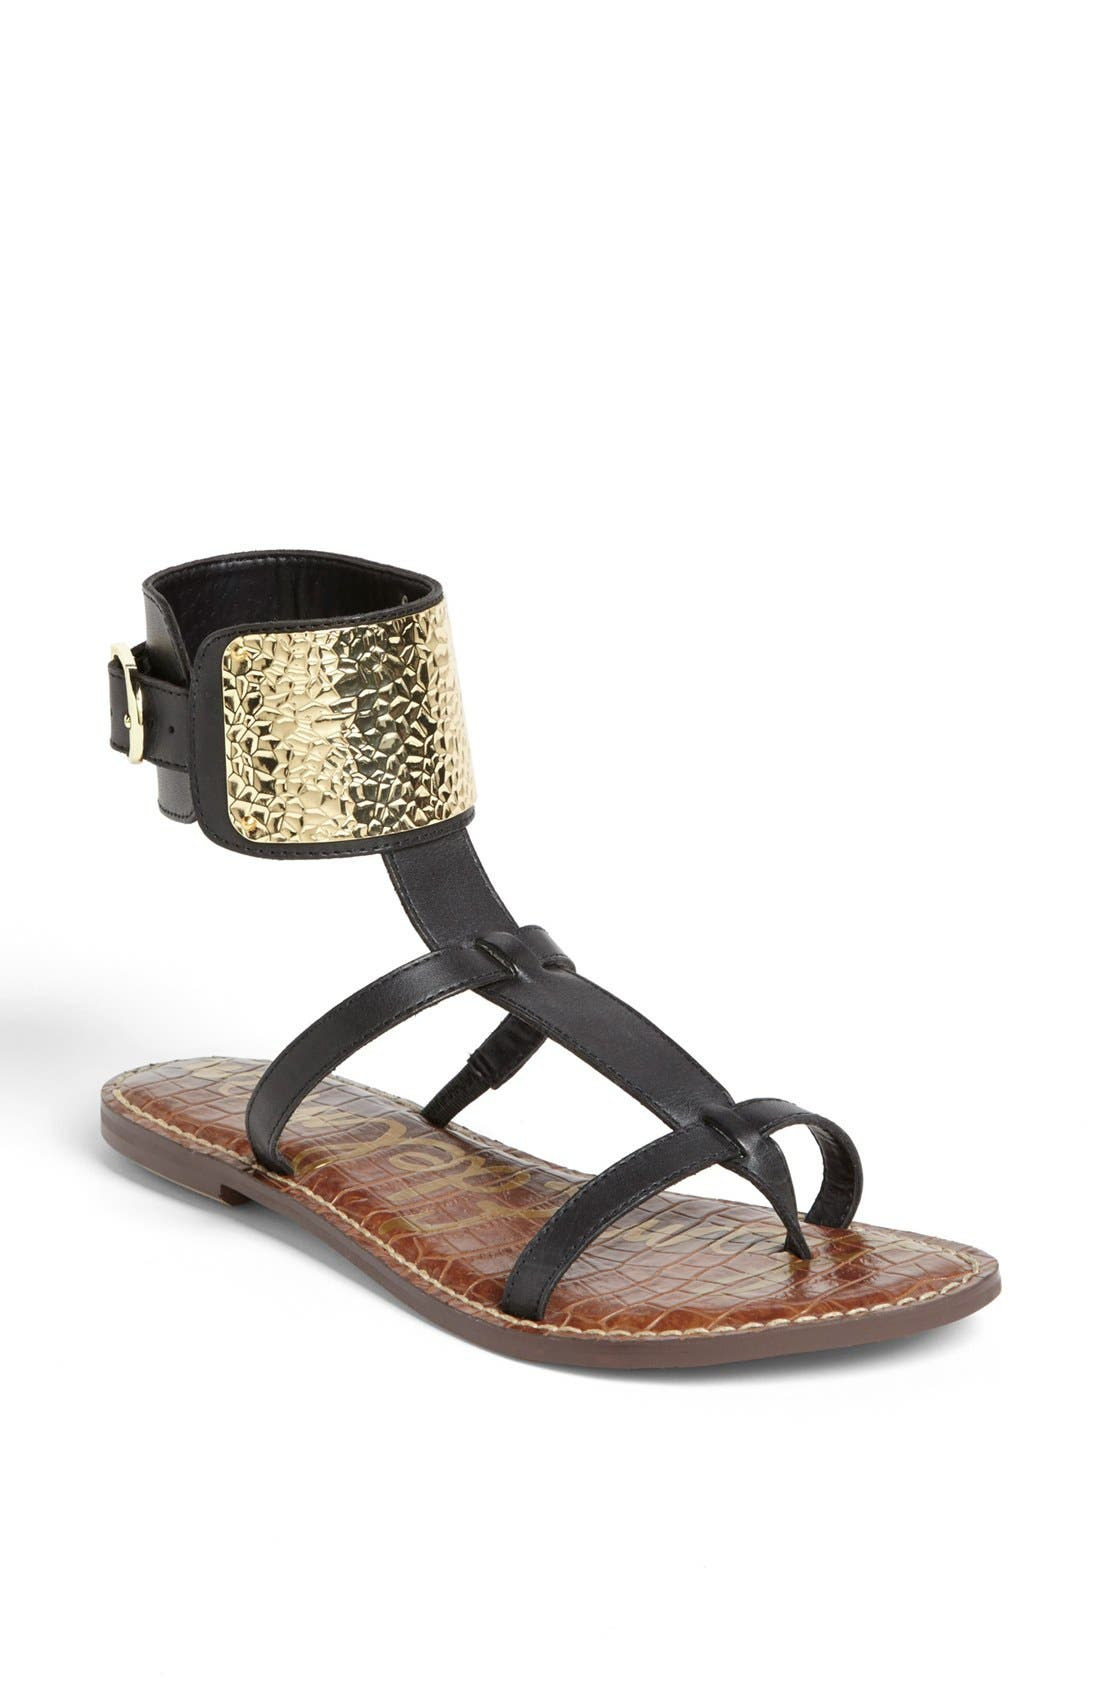 Alternate Image 1 Selected - Sam Edelman 'Genette' Sandal